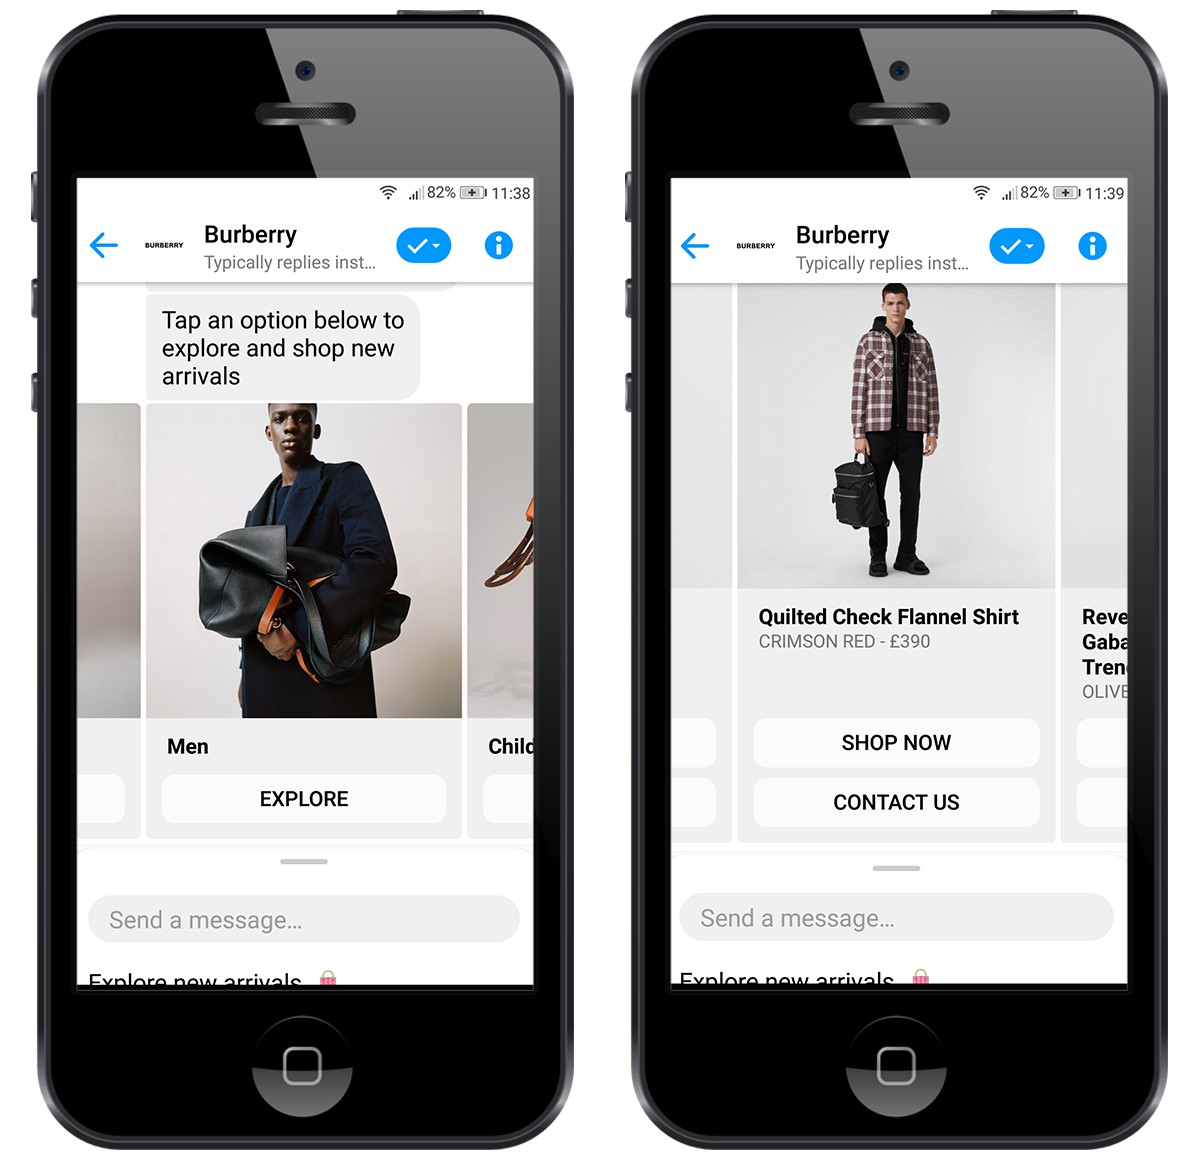 Burberry Clothing Chatbot